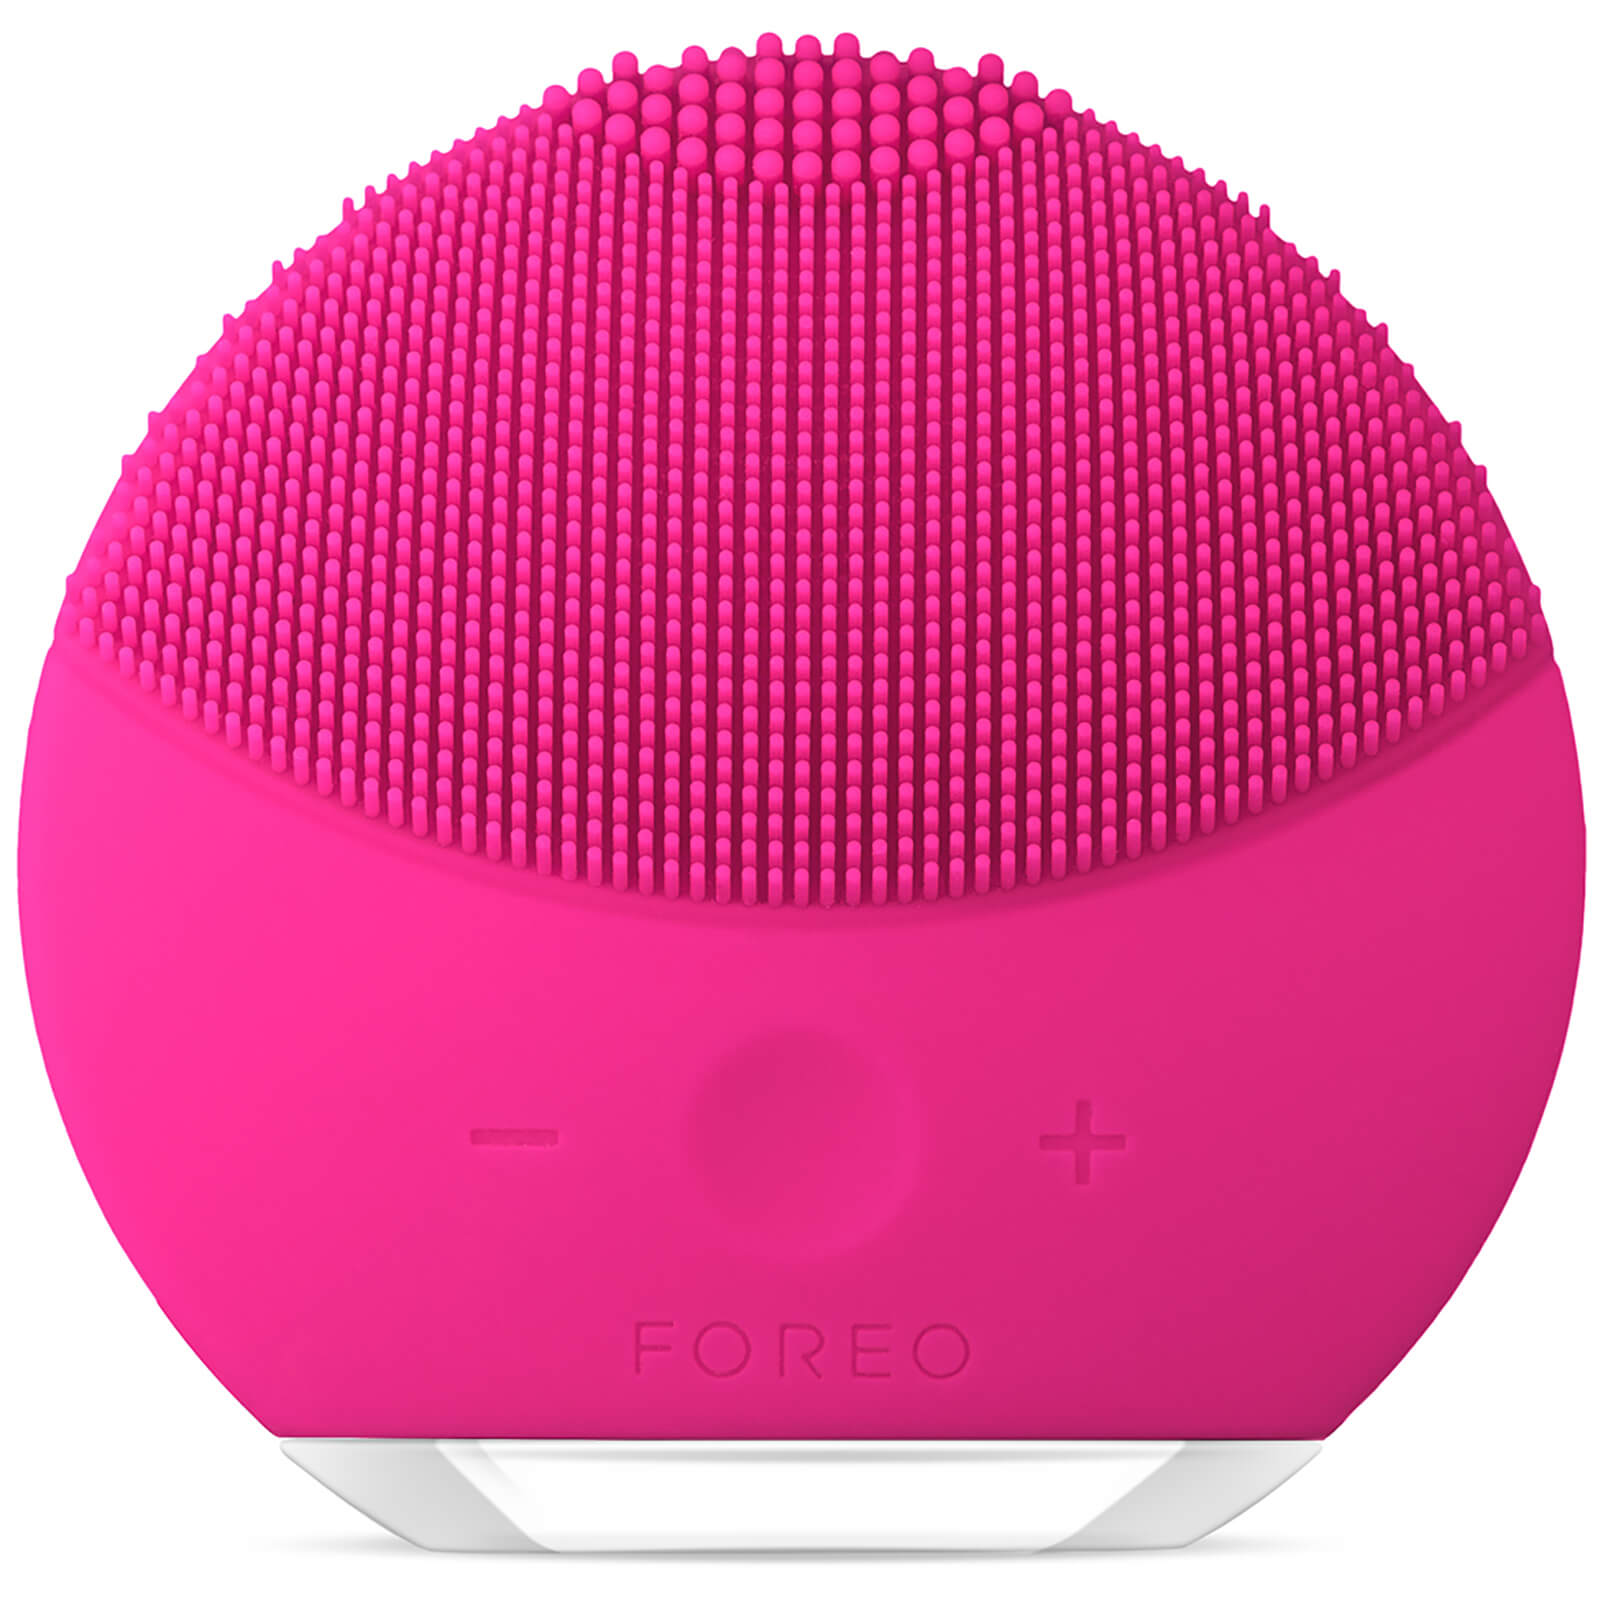 Image of Foreo Luna Mini 2 F6231 Facial Cleansing Brush - Red